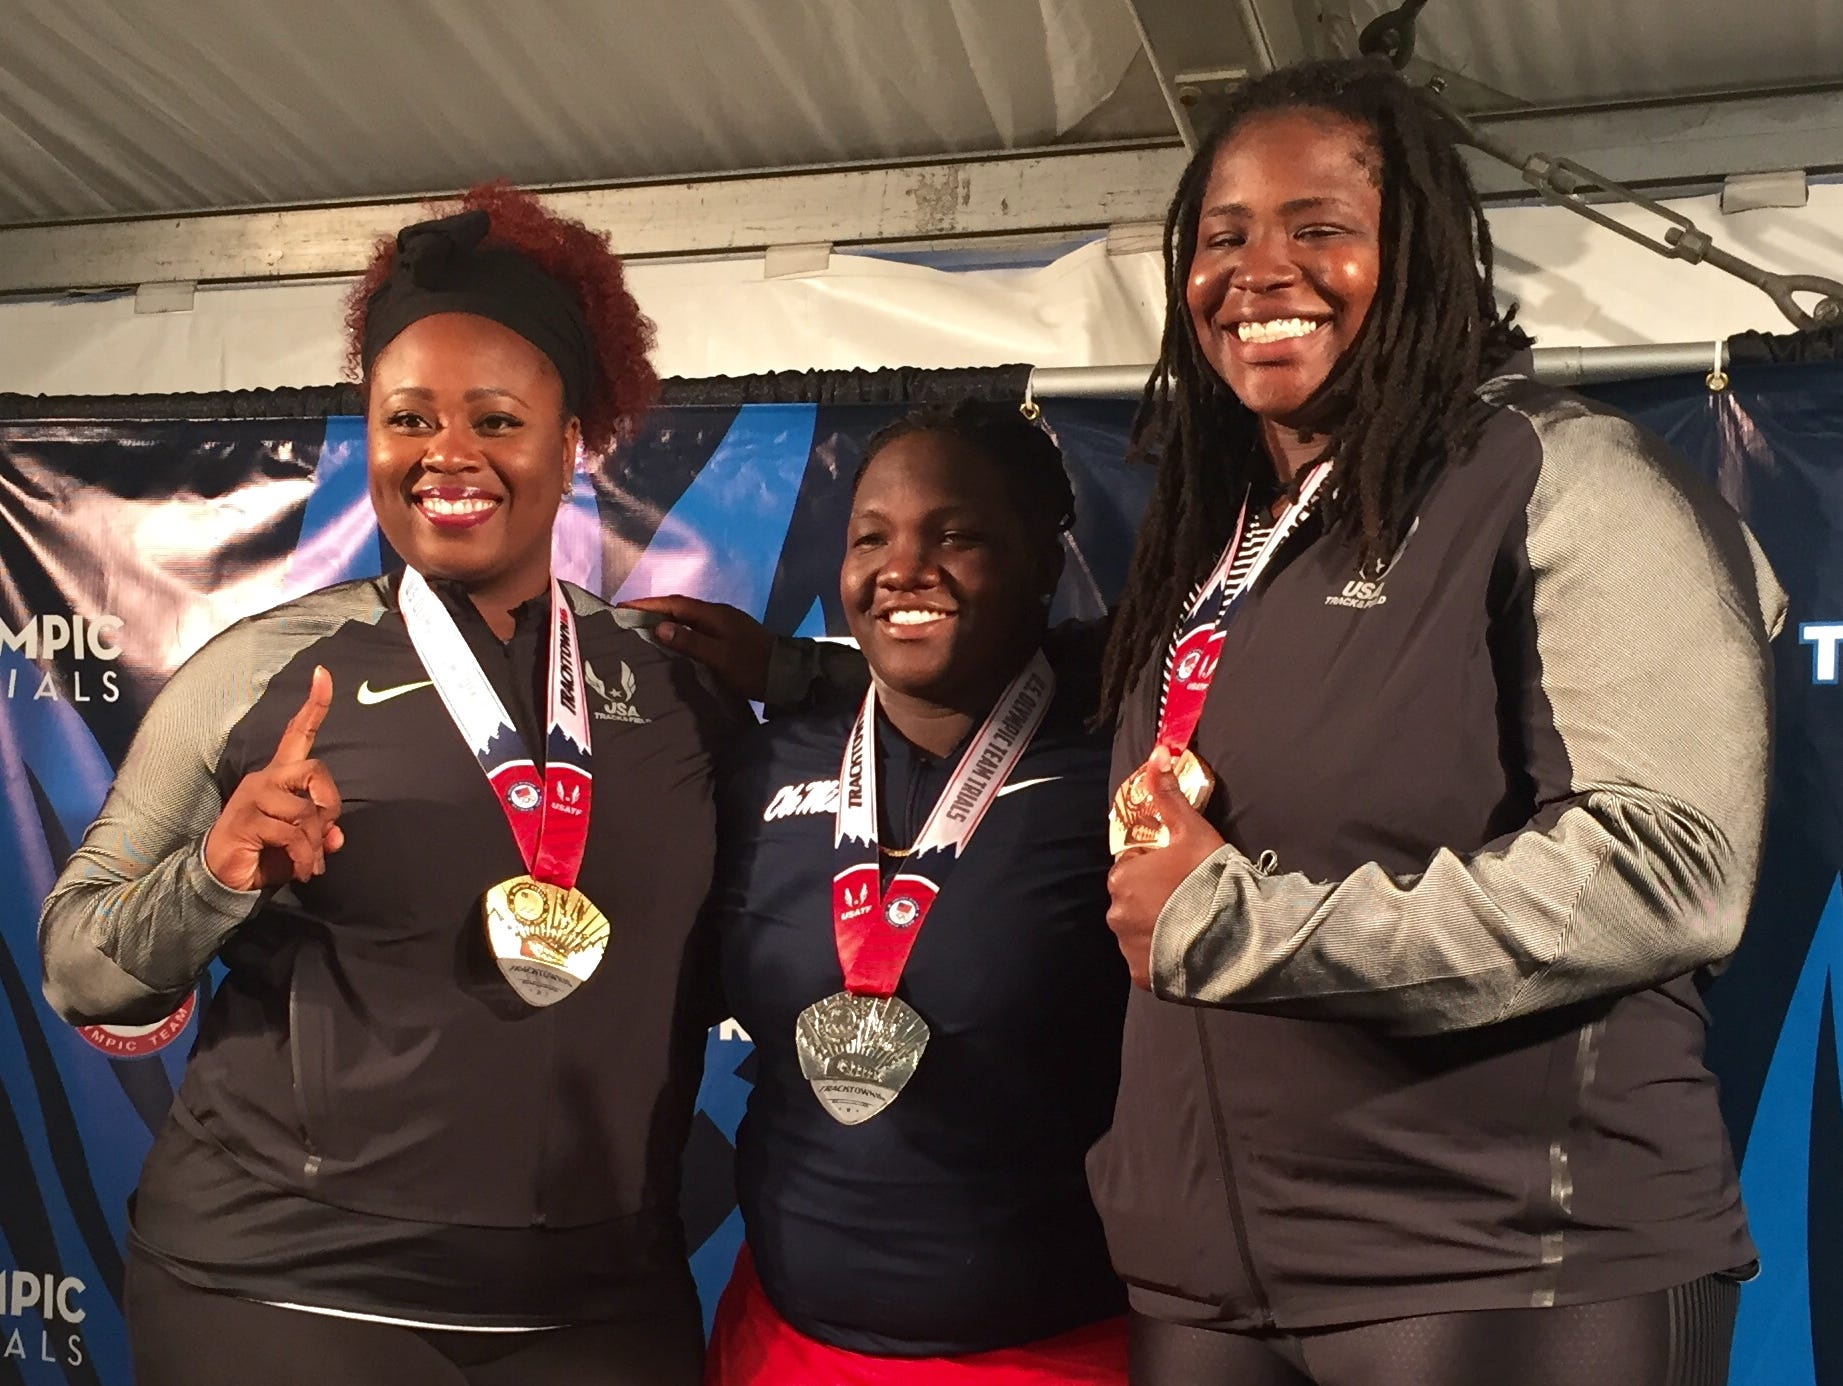 Felisha Johnson made the Olympic team with winner Michelle Carter, left, and Raven Saunders.